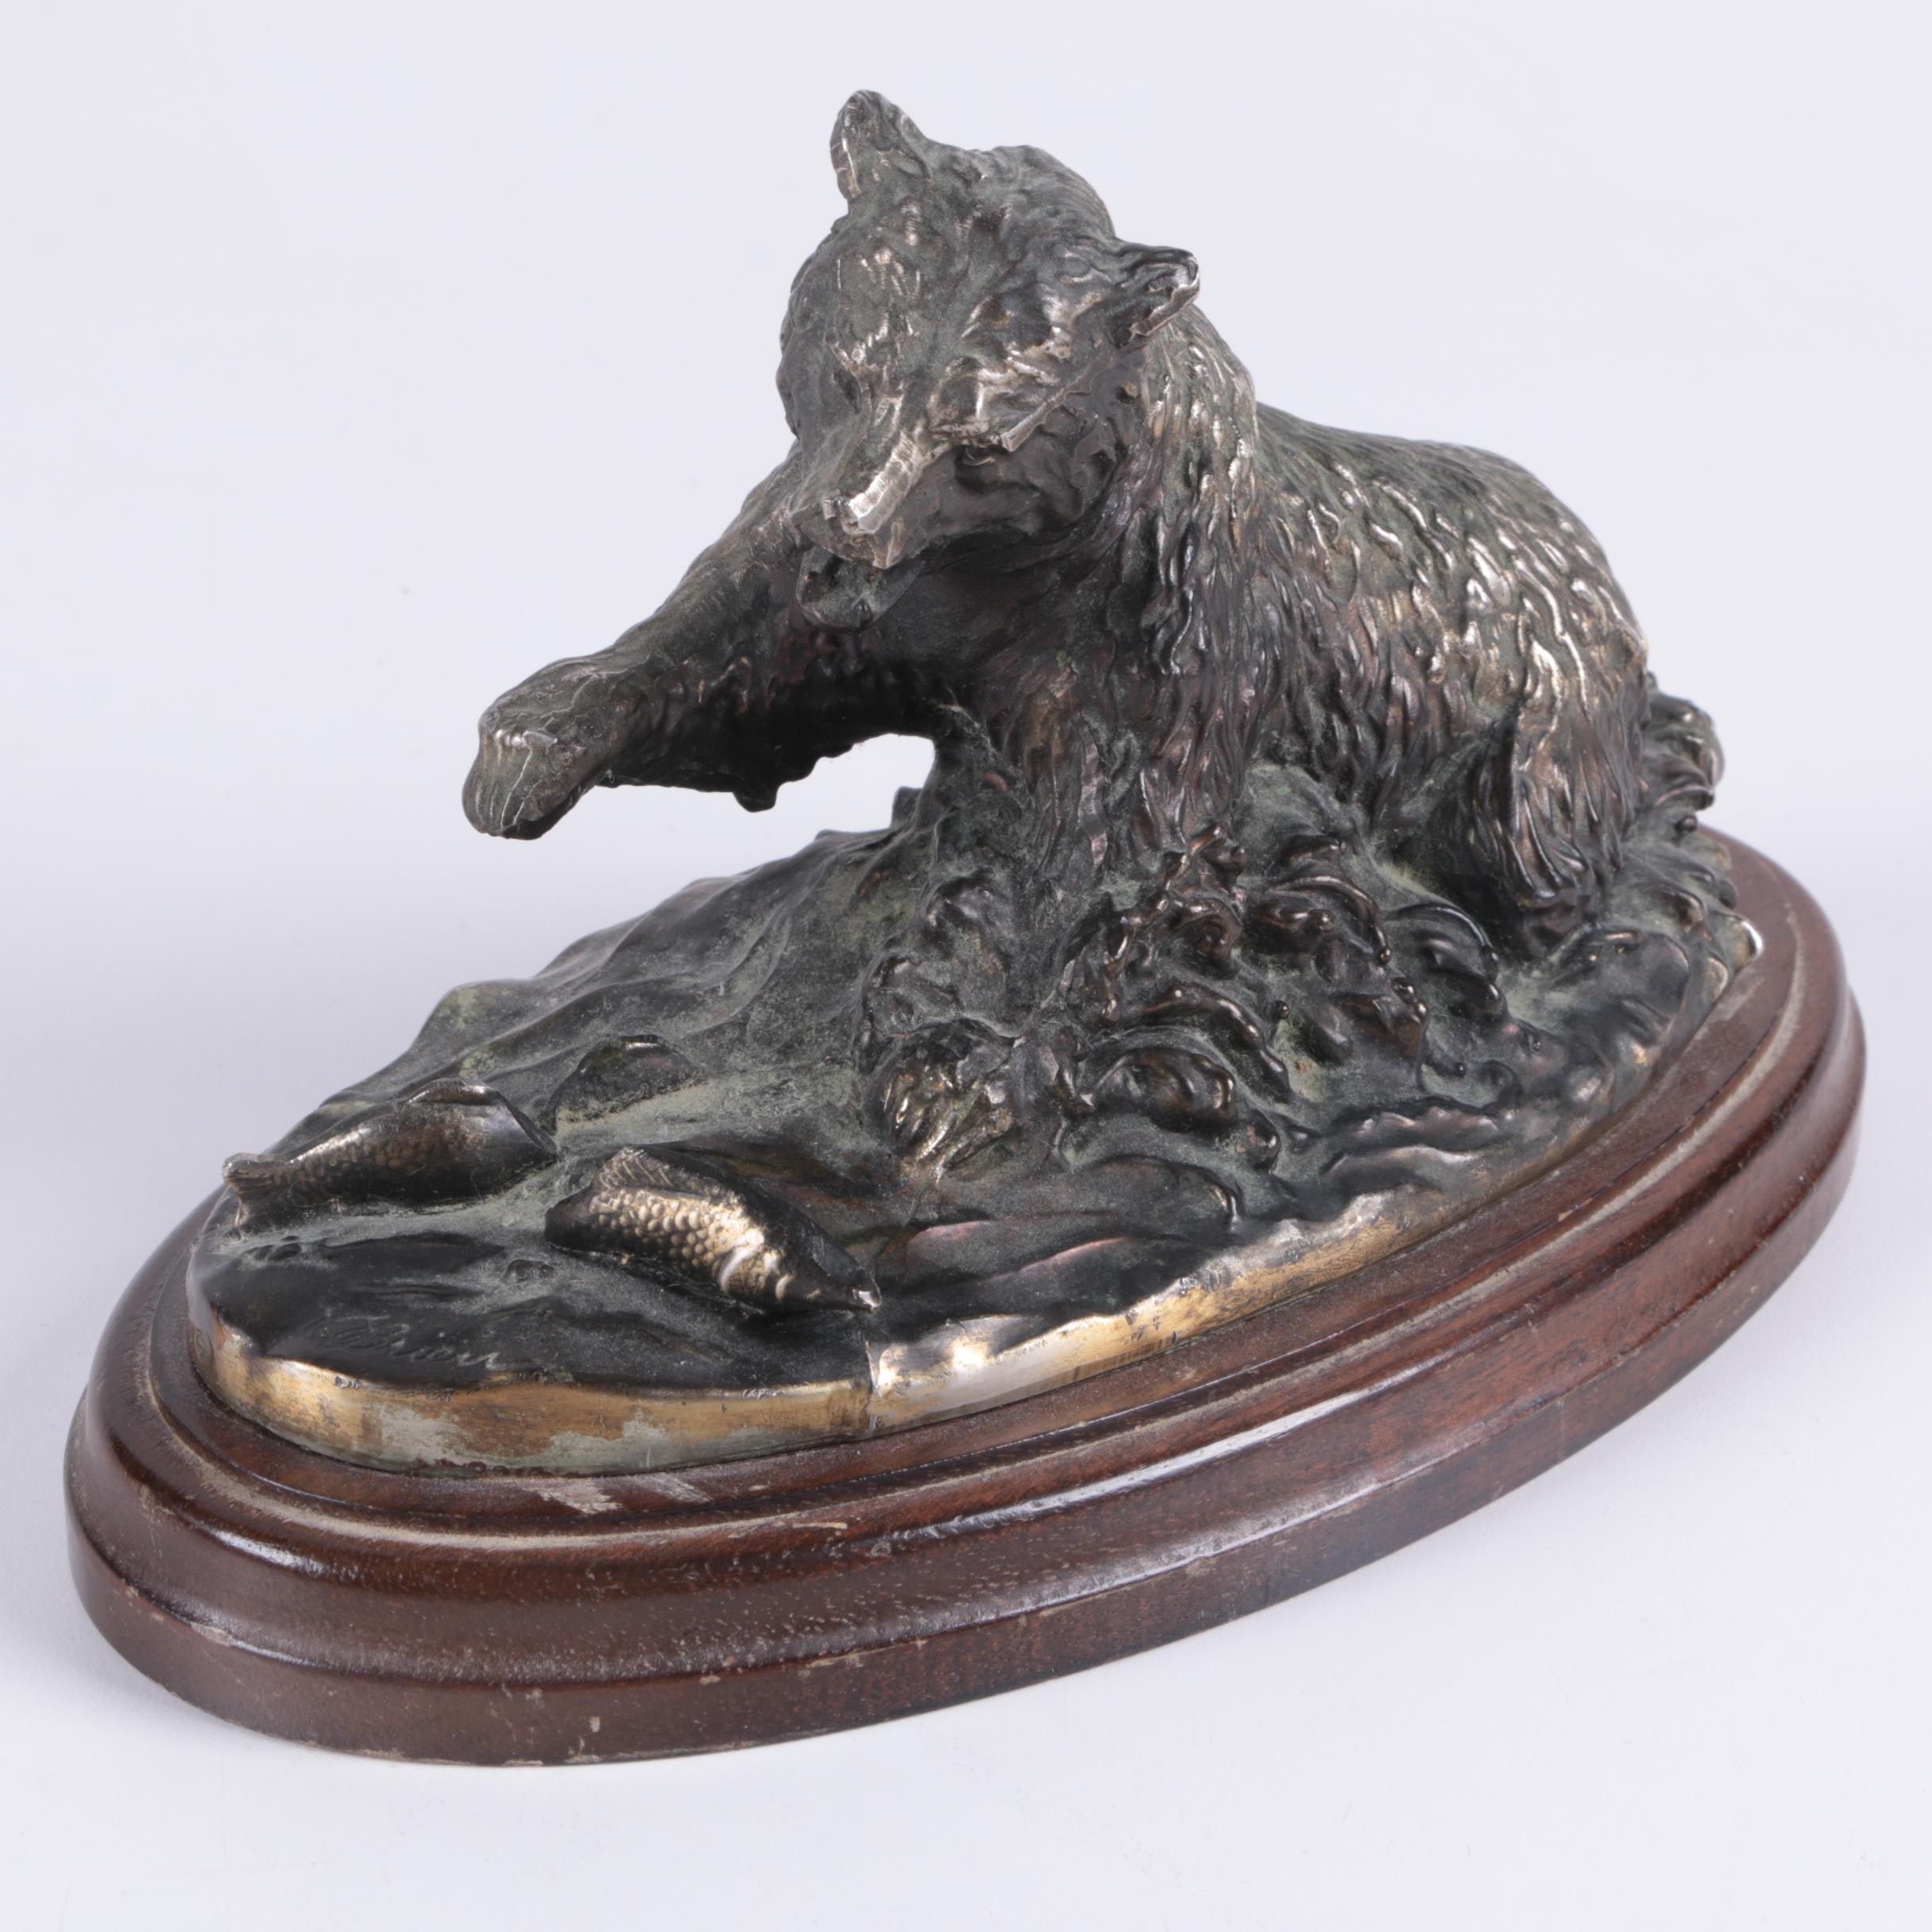 Reproduction Bronze Sculpture of Grizzly Bear